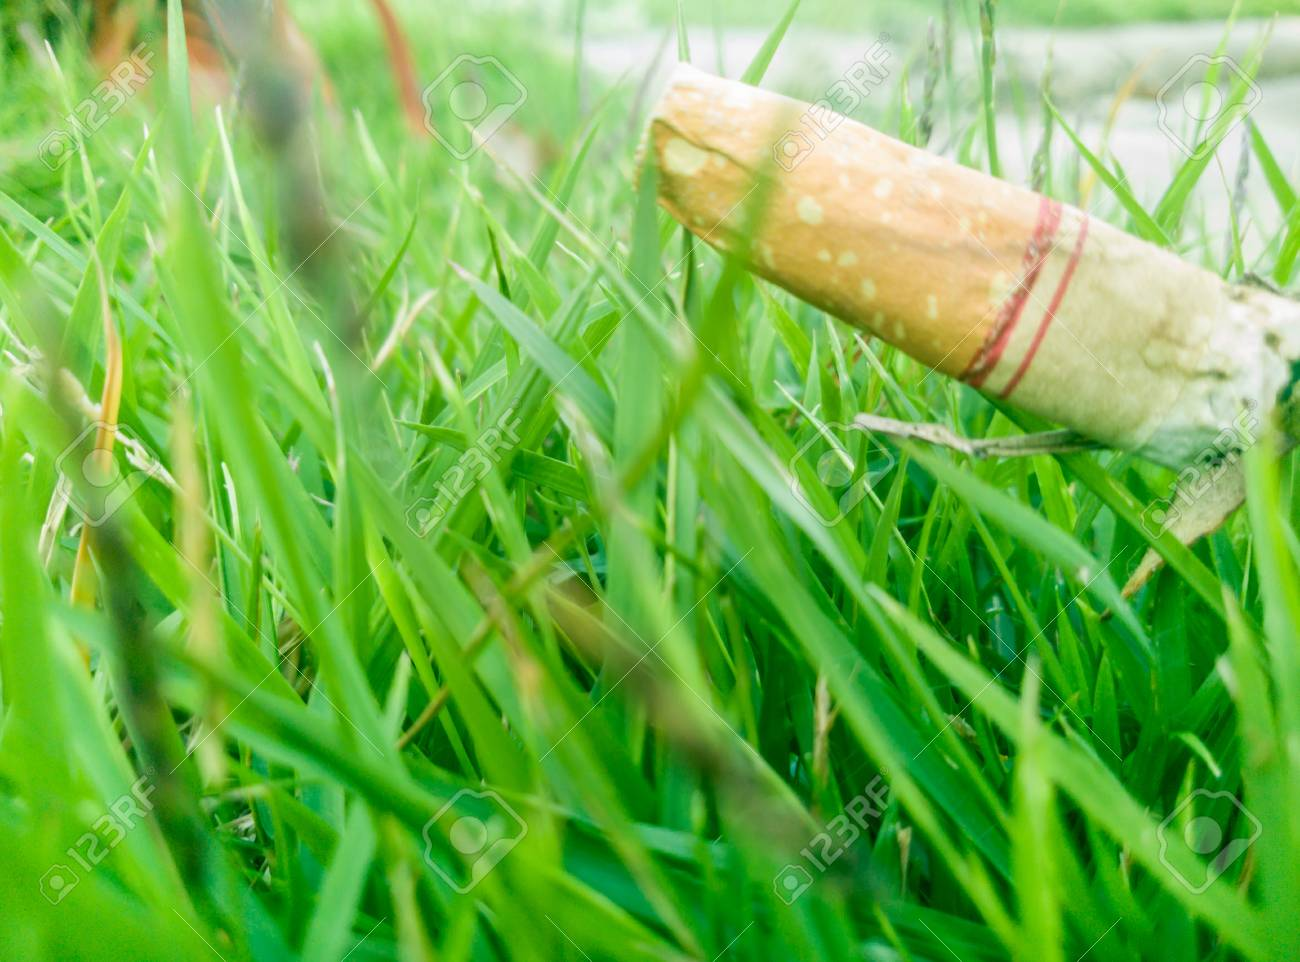 Cigarette Stub With Green Plant Background Stock Photo Picture 1300x962